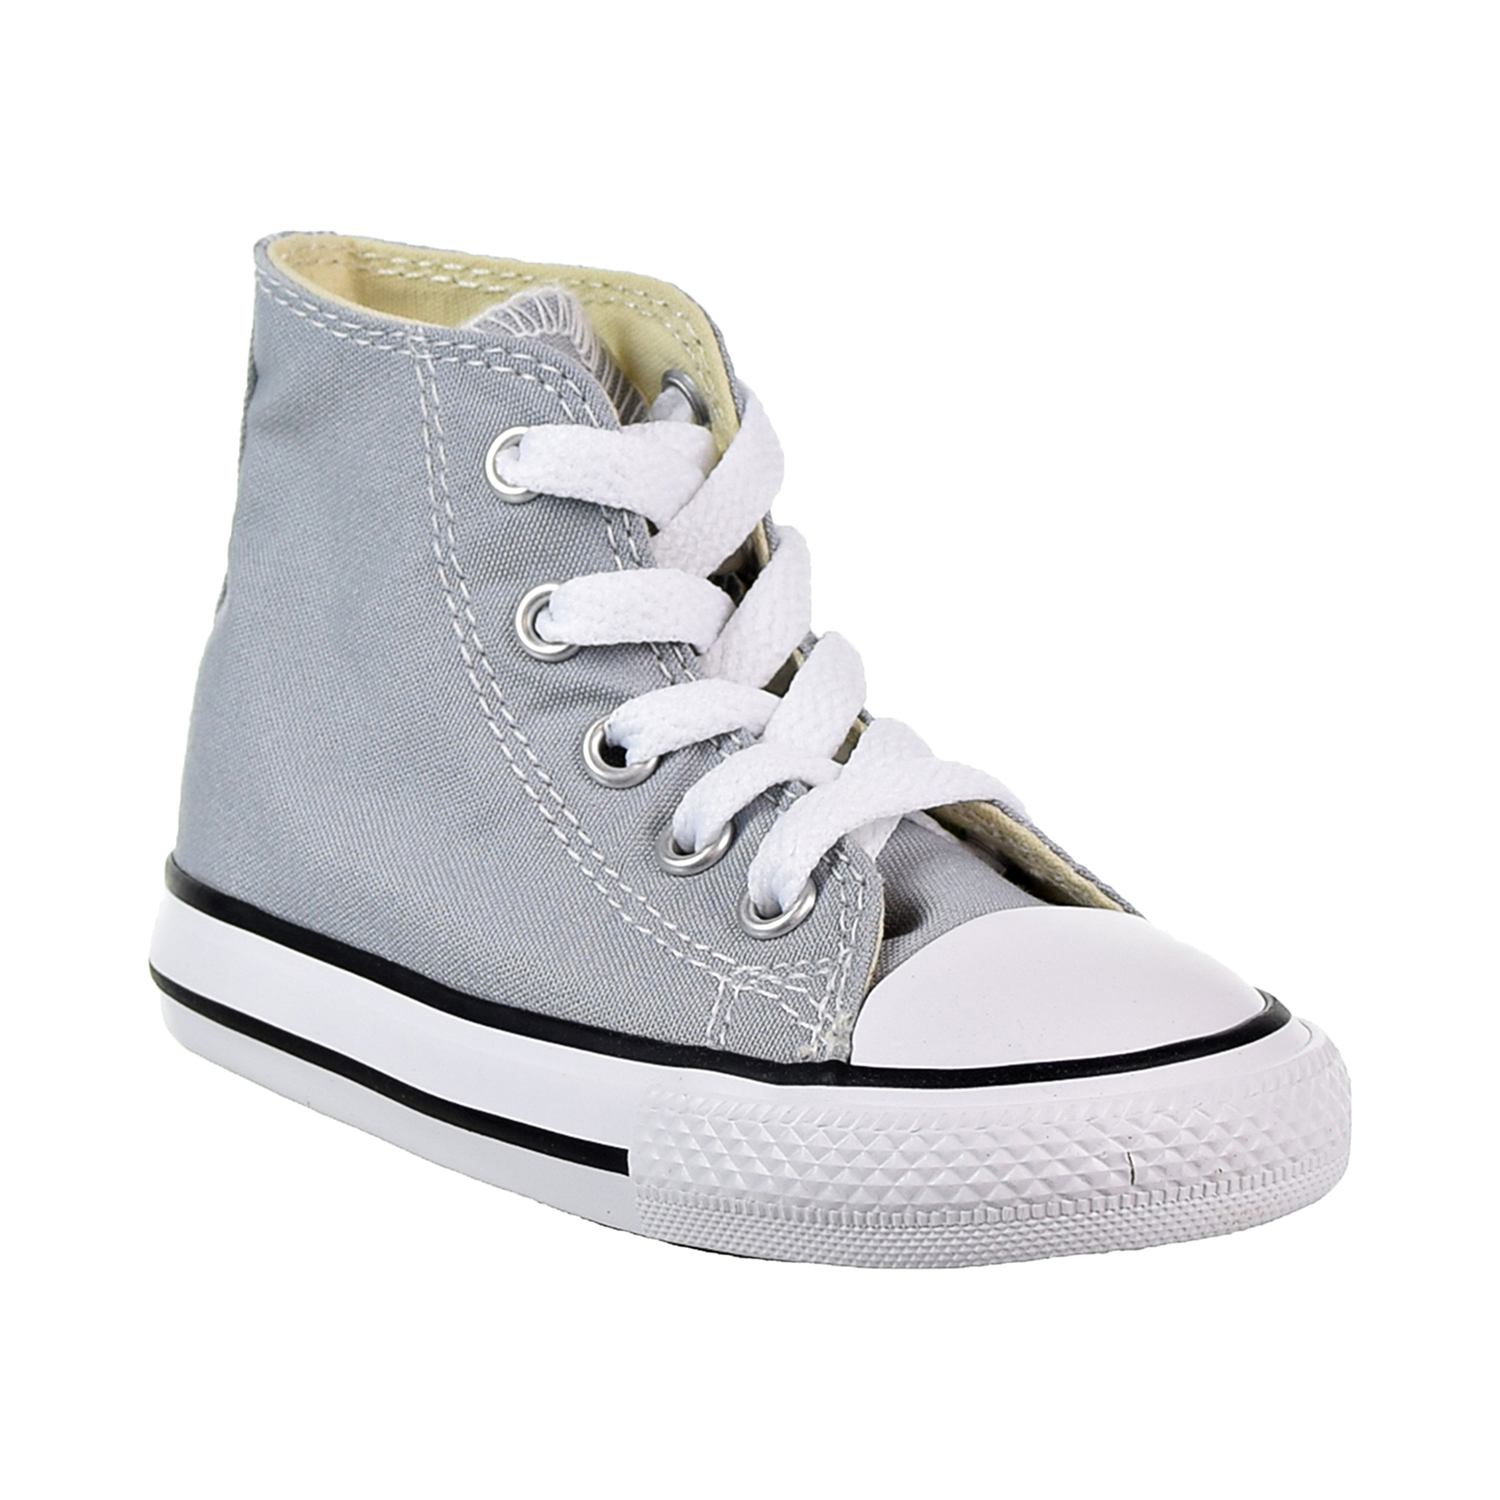 Converse Chuck Taylor All Star Cribster Mid Baby Shoes Wolf Grey-Ivory 865159C